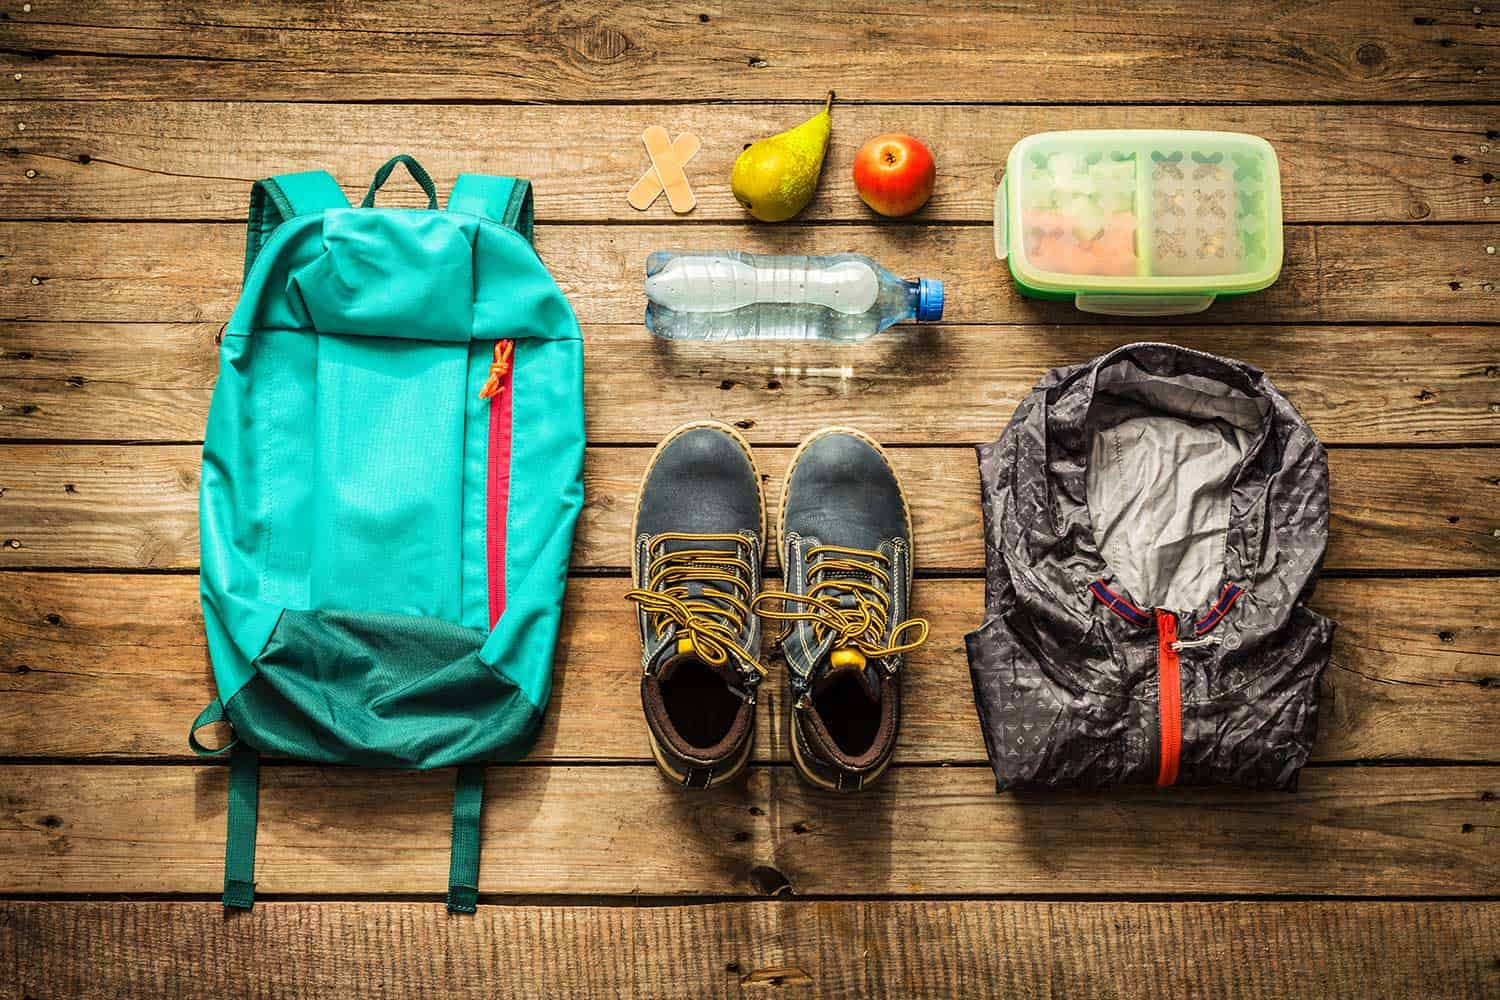 Backpack, boots, jacket, lunch box, water and fruits on wooden background